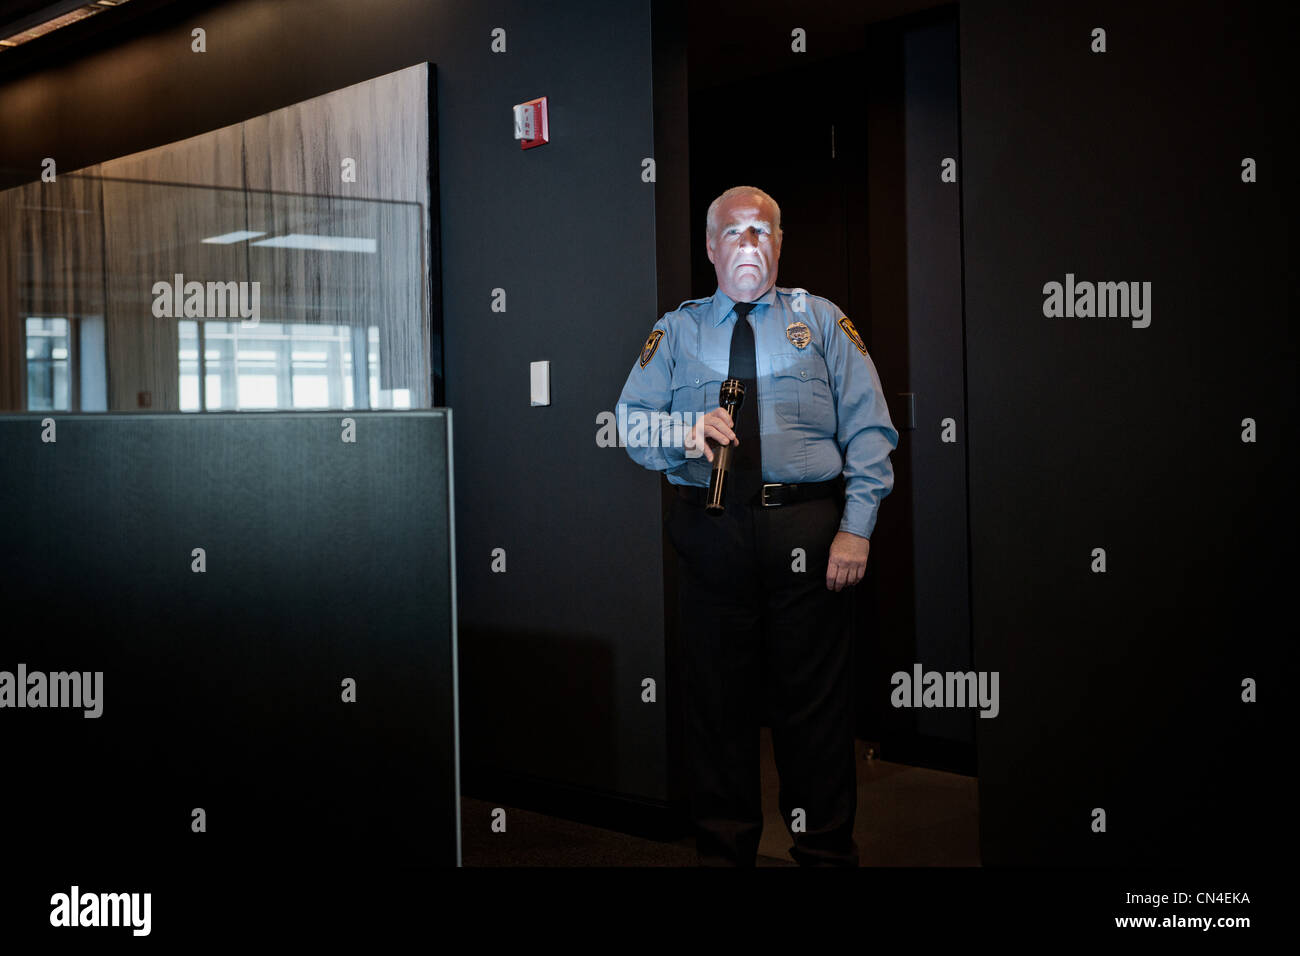 Security guard illuminating face with torch - Stock Image